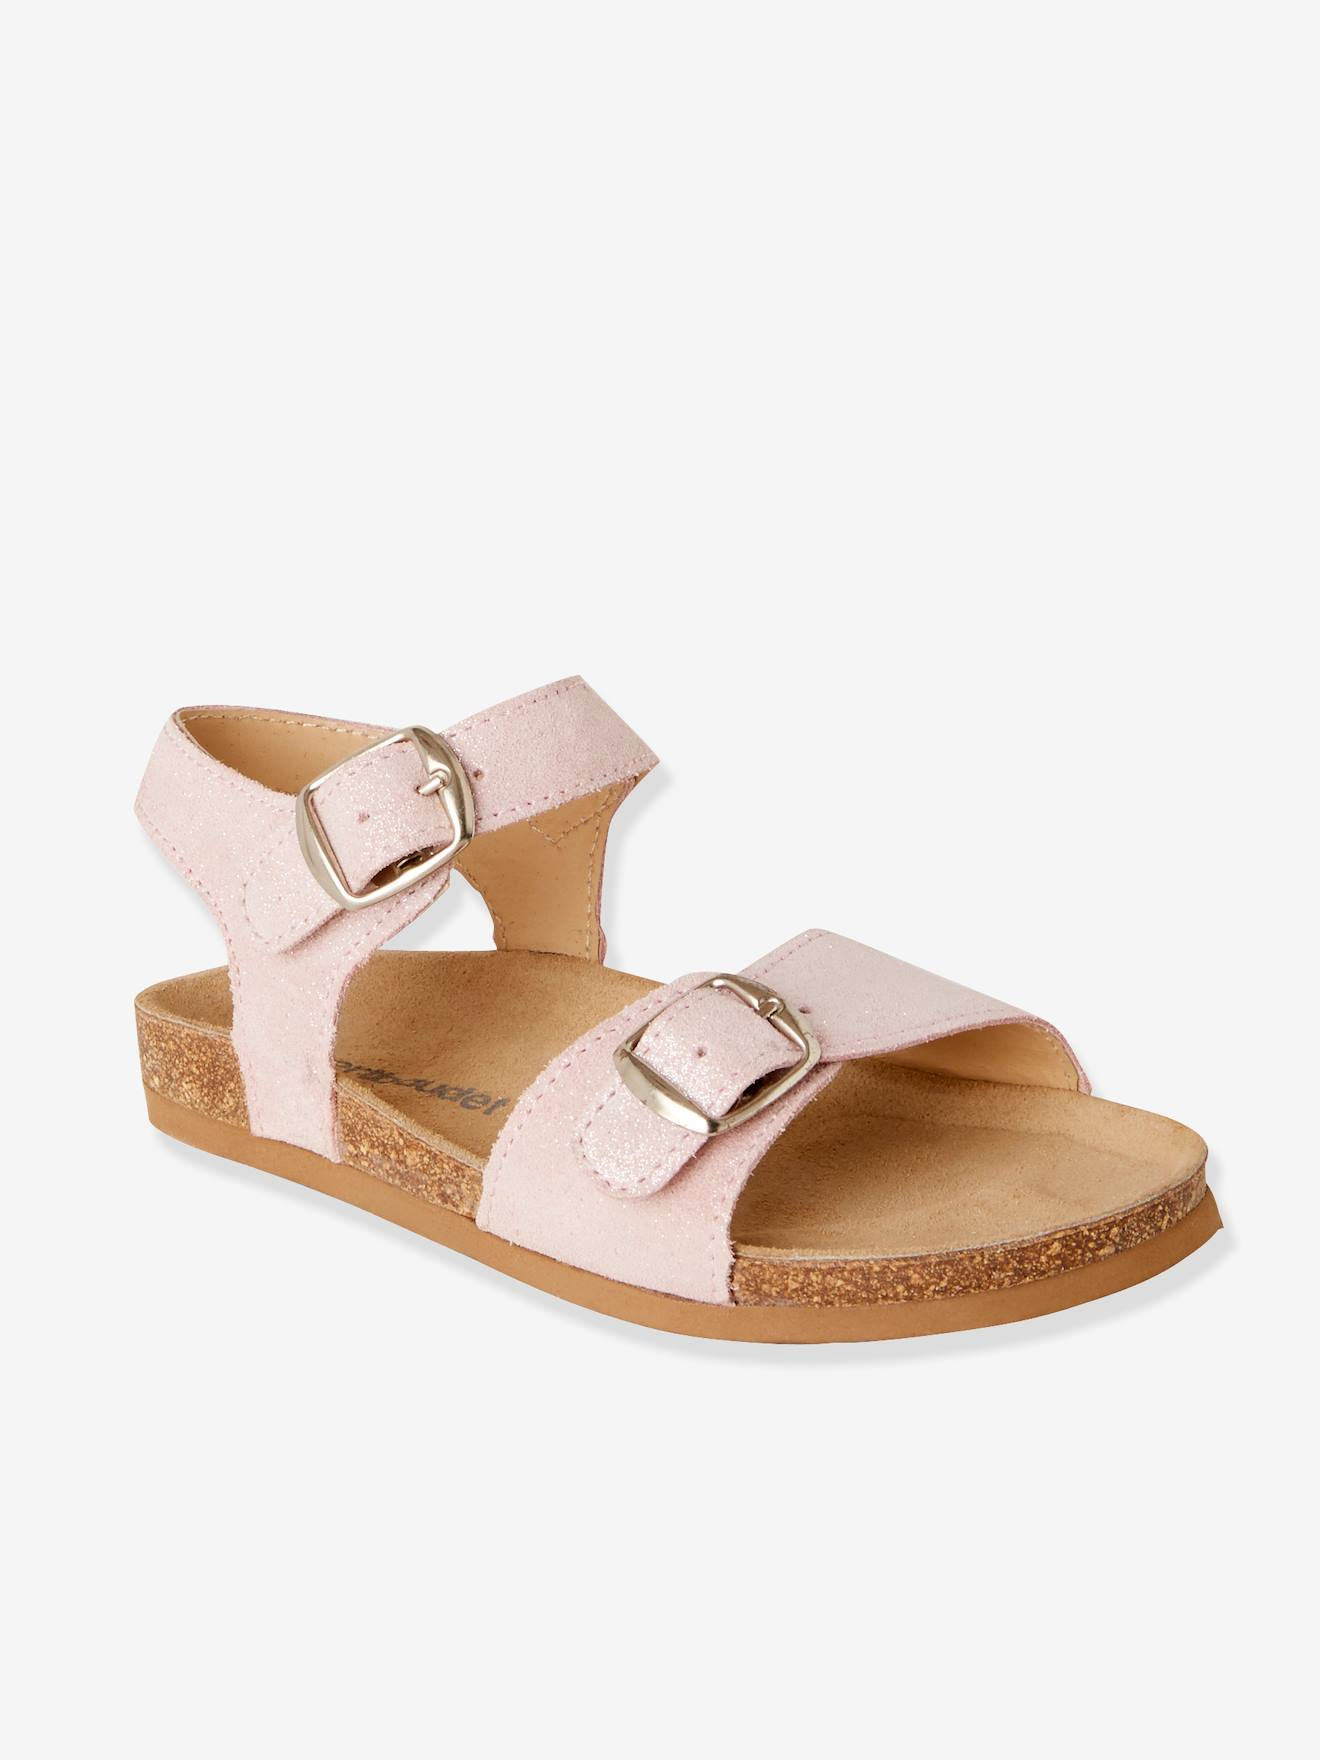 For Girls Pink Light SolidShoes Anatomic Leather Sandals b6fg7y